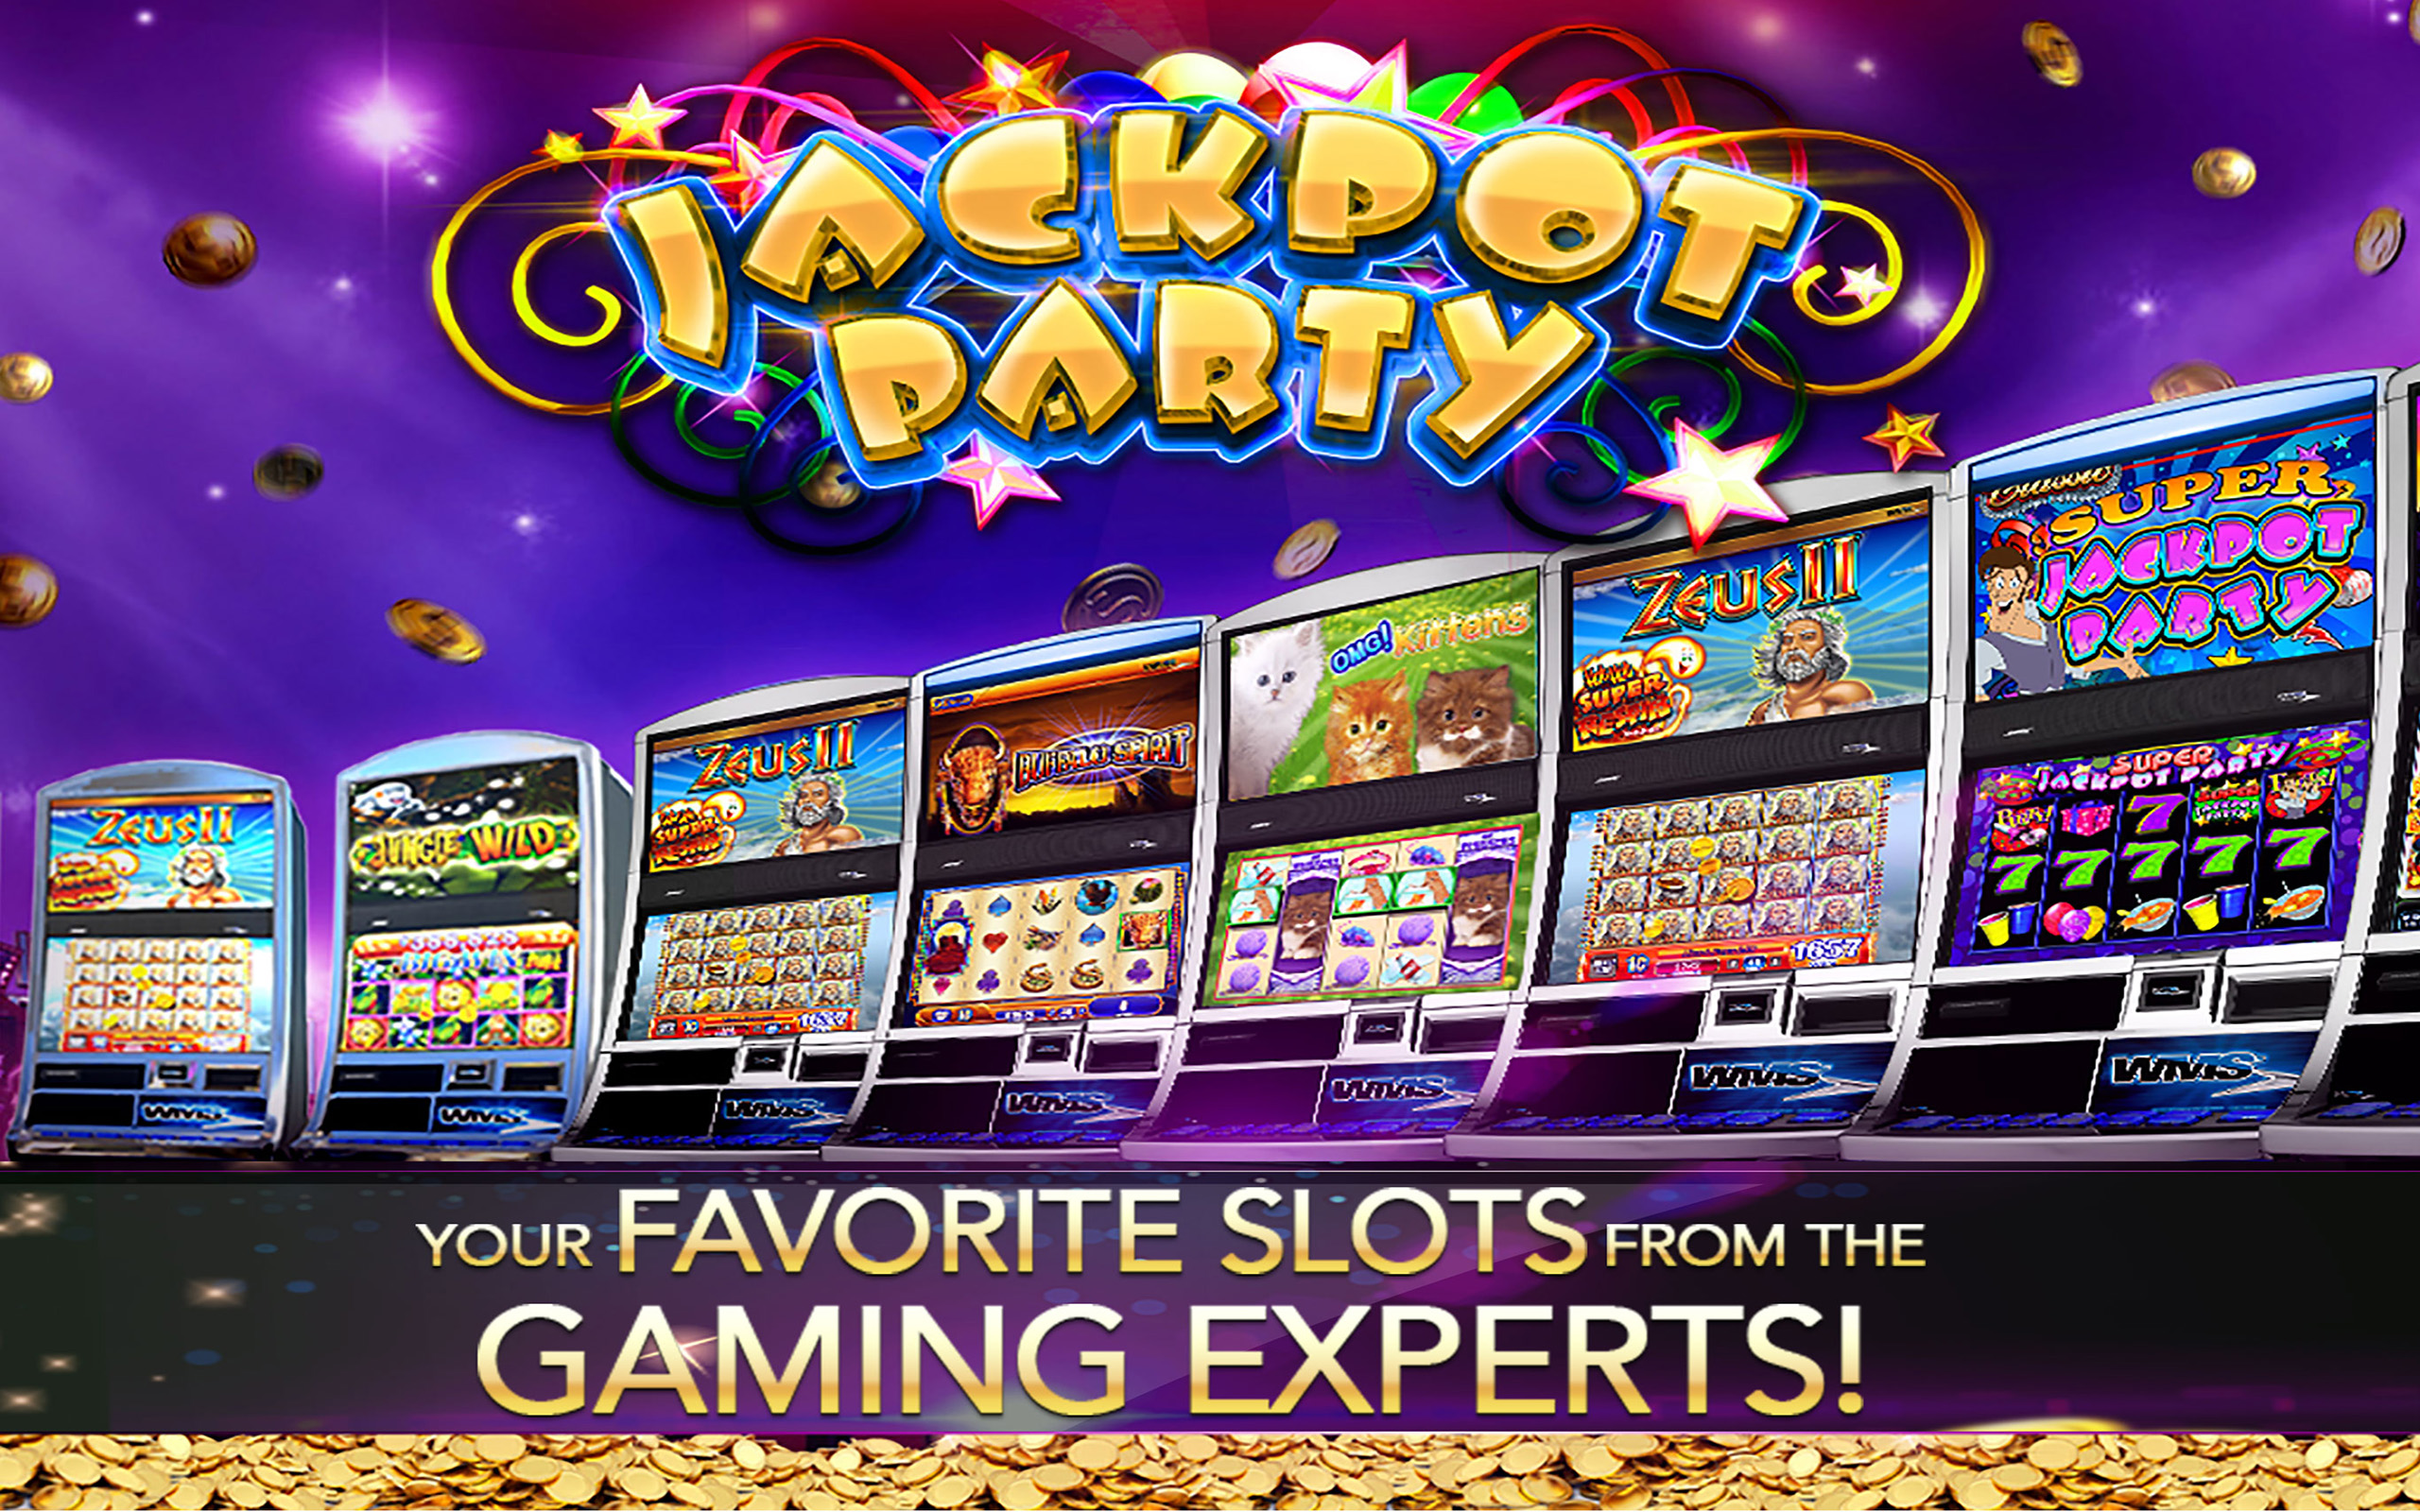 Super Jackpot Party Slot Game Review